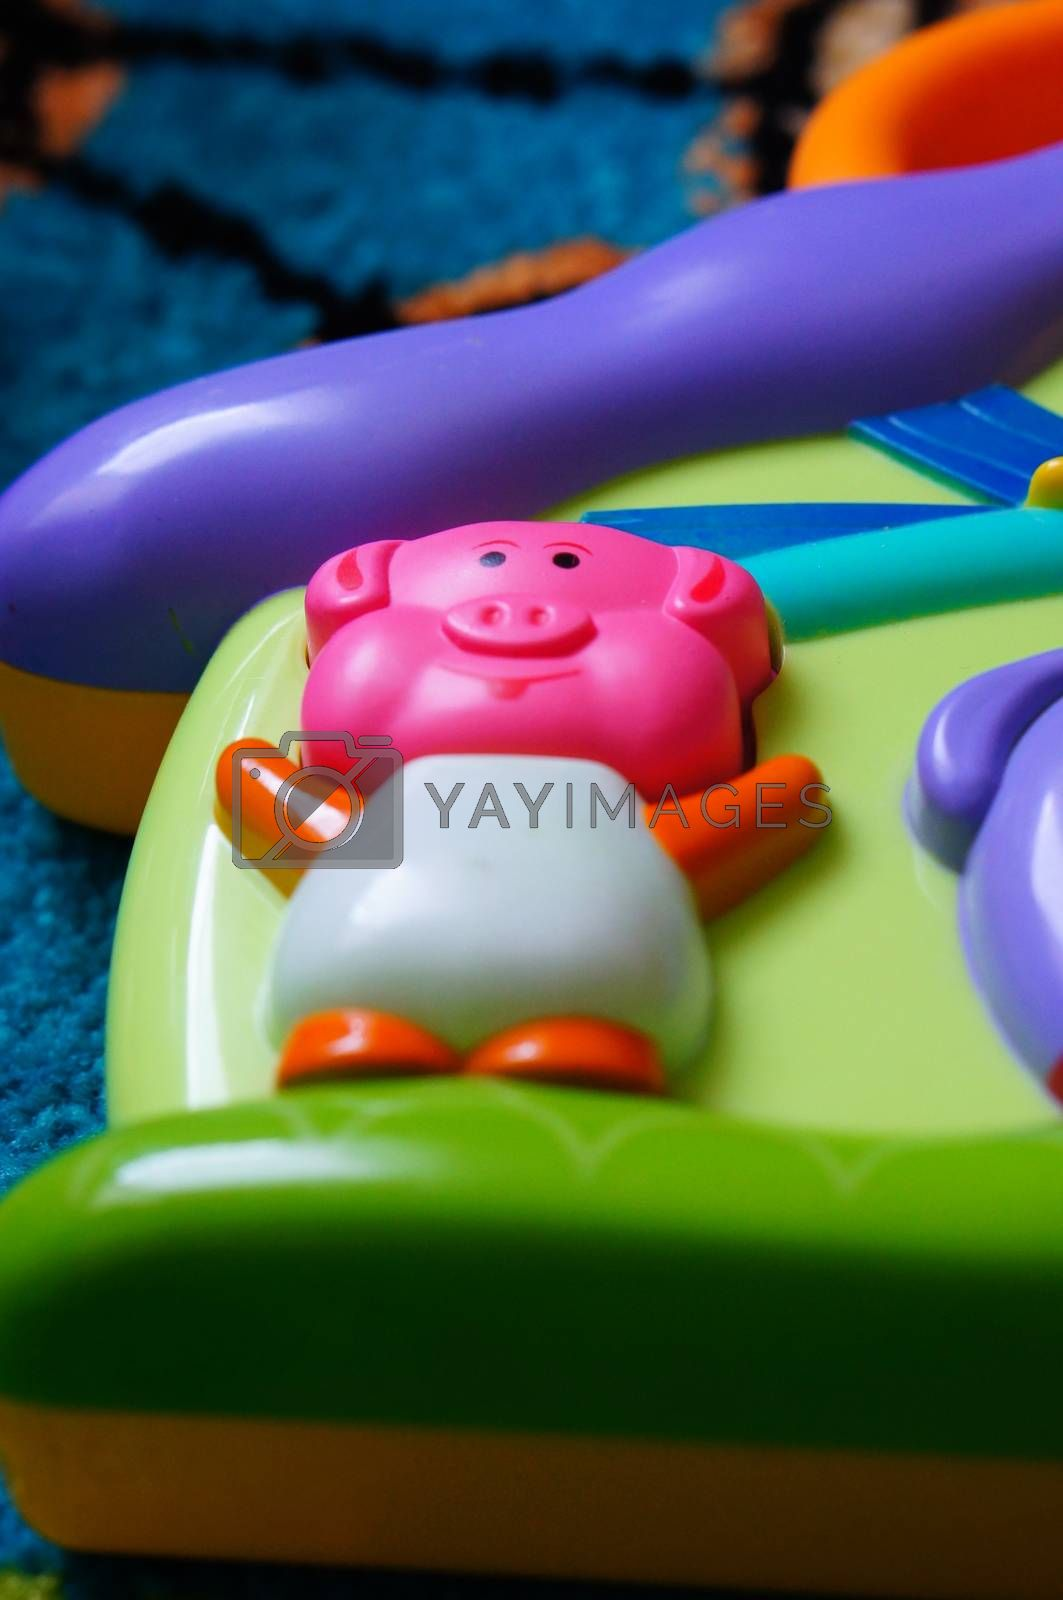 Pig button of a baby sound toy